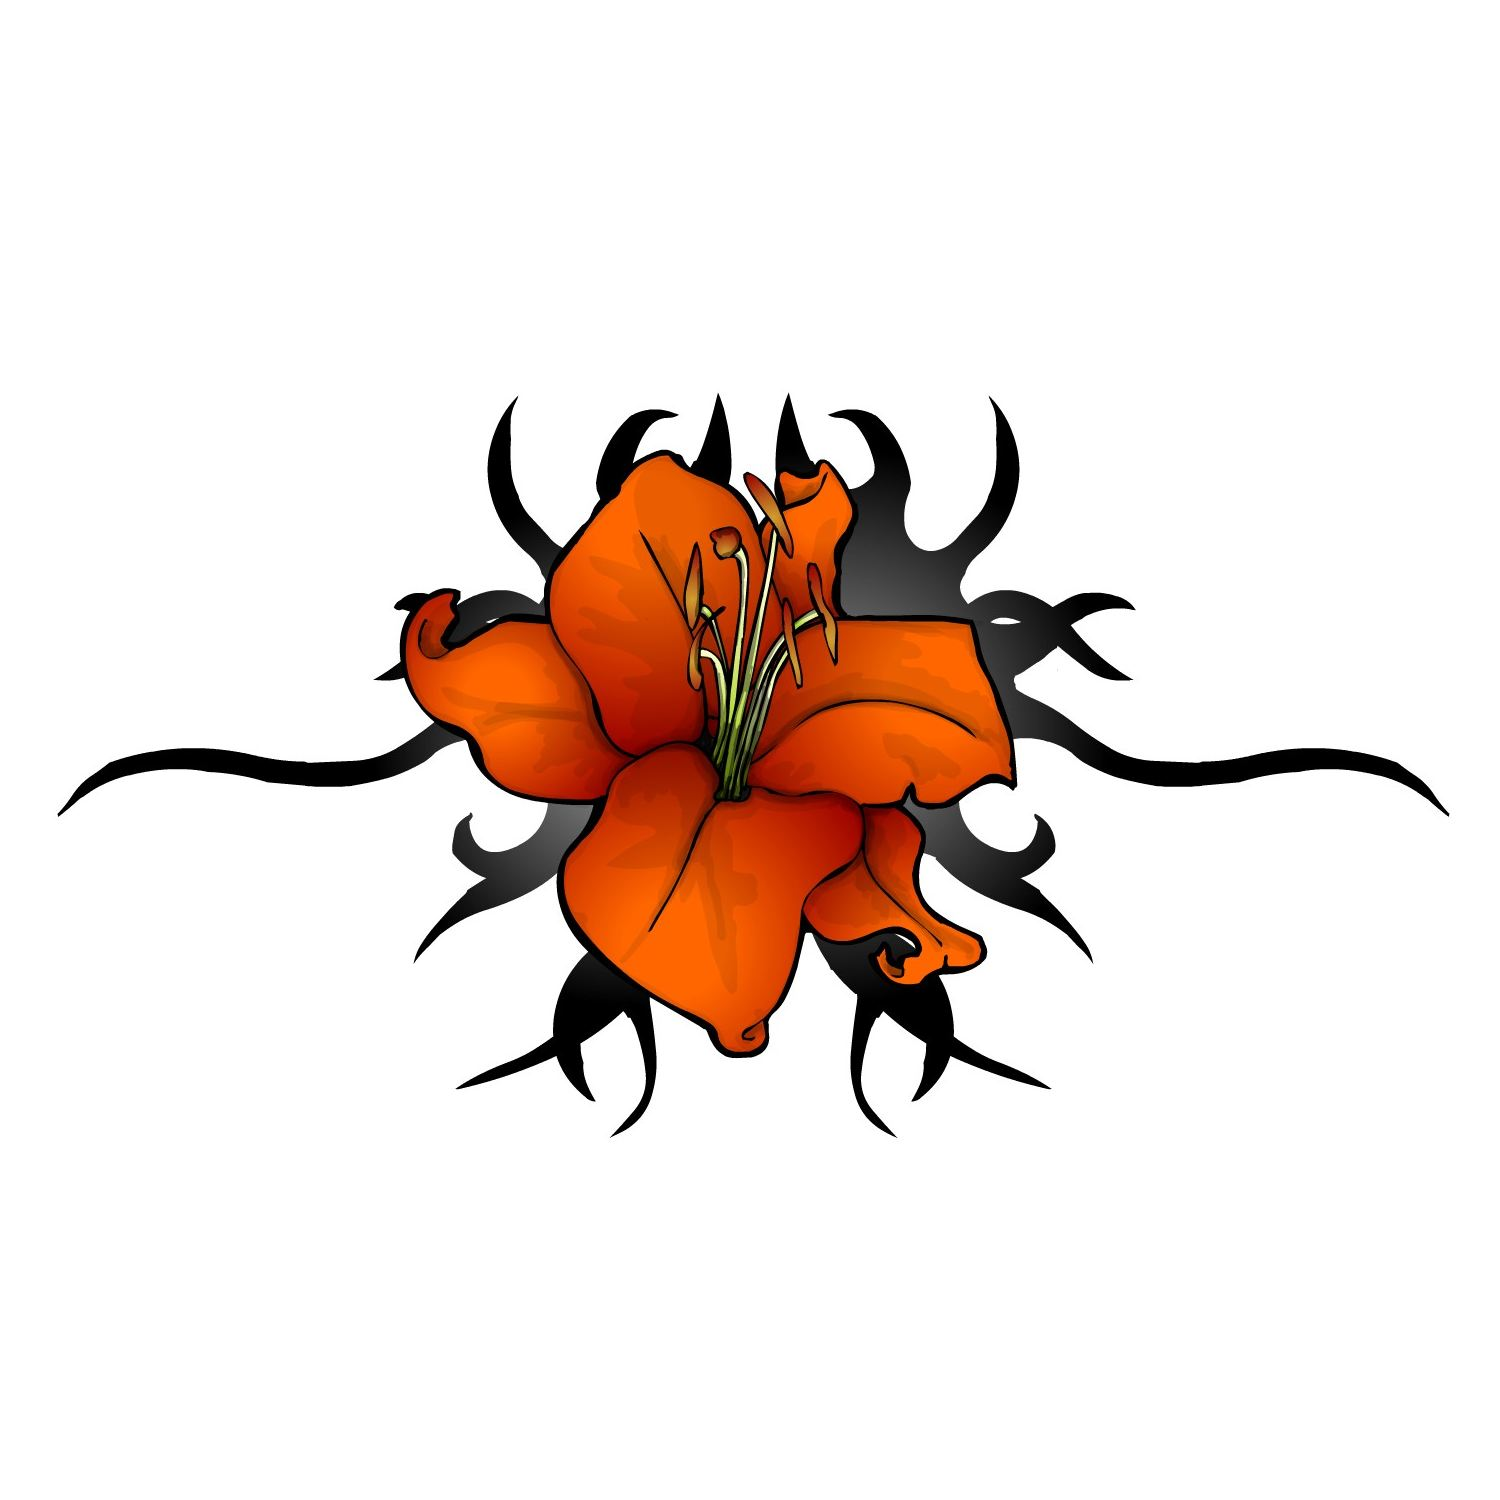 Tribal lily flowers tattoo design tribal lily flowers tattoo design photo 1 izmirmasajfo Choice Image